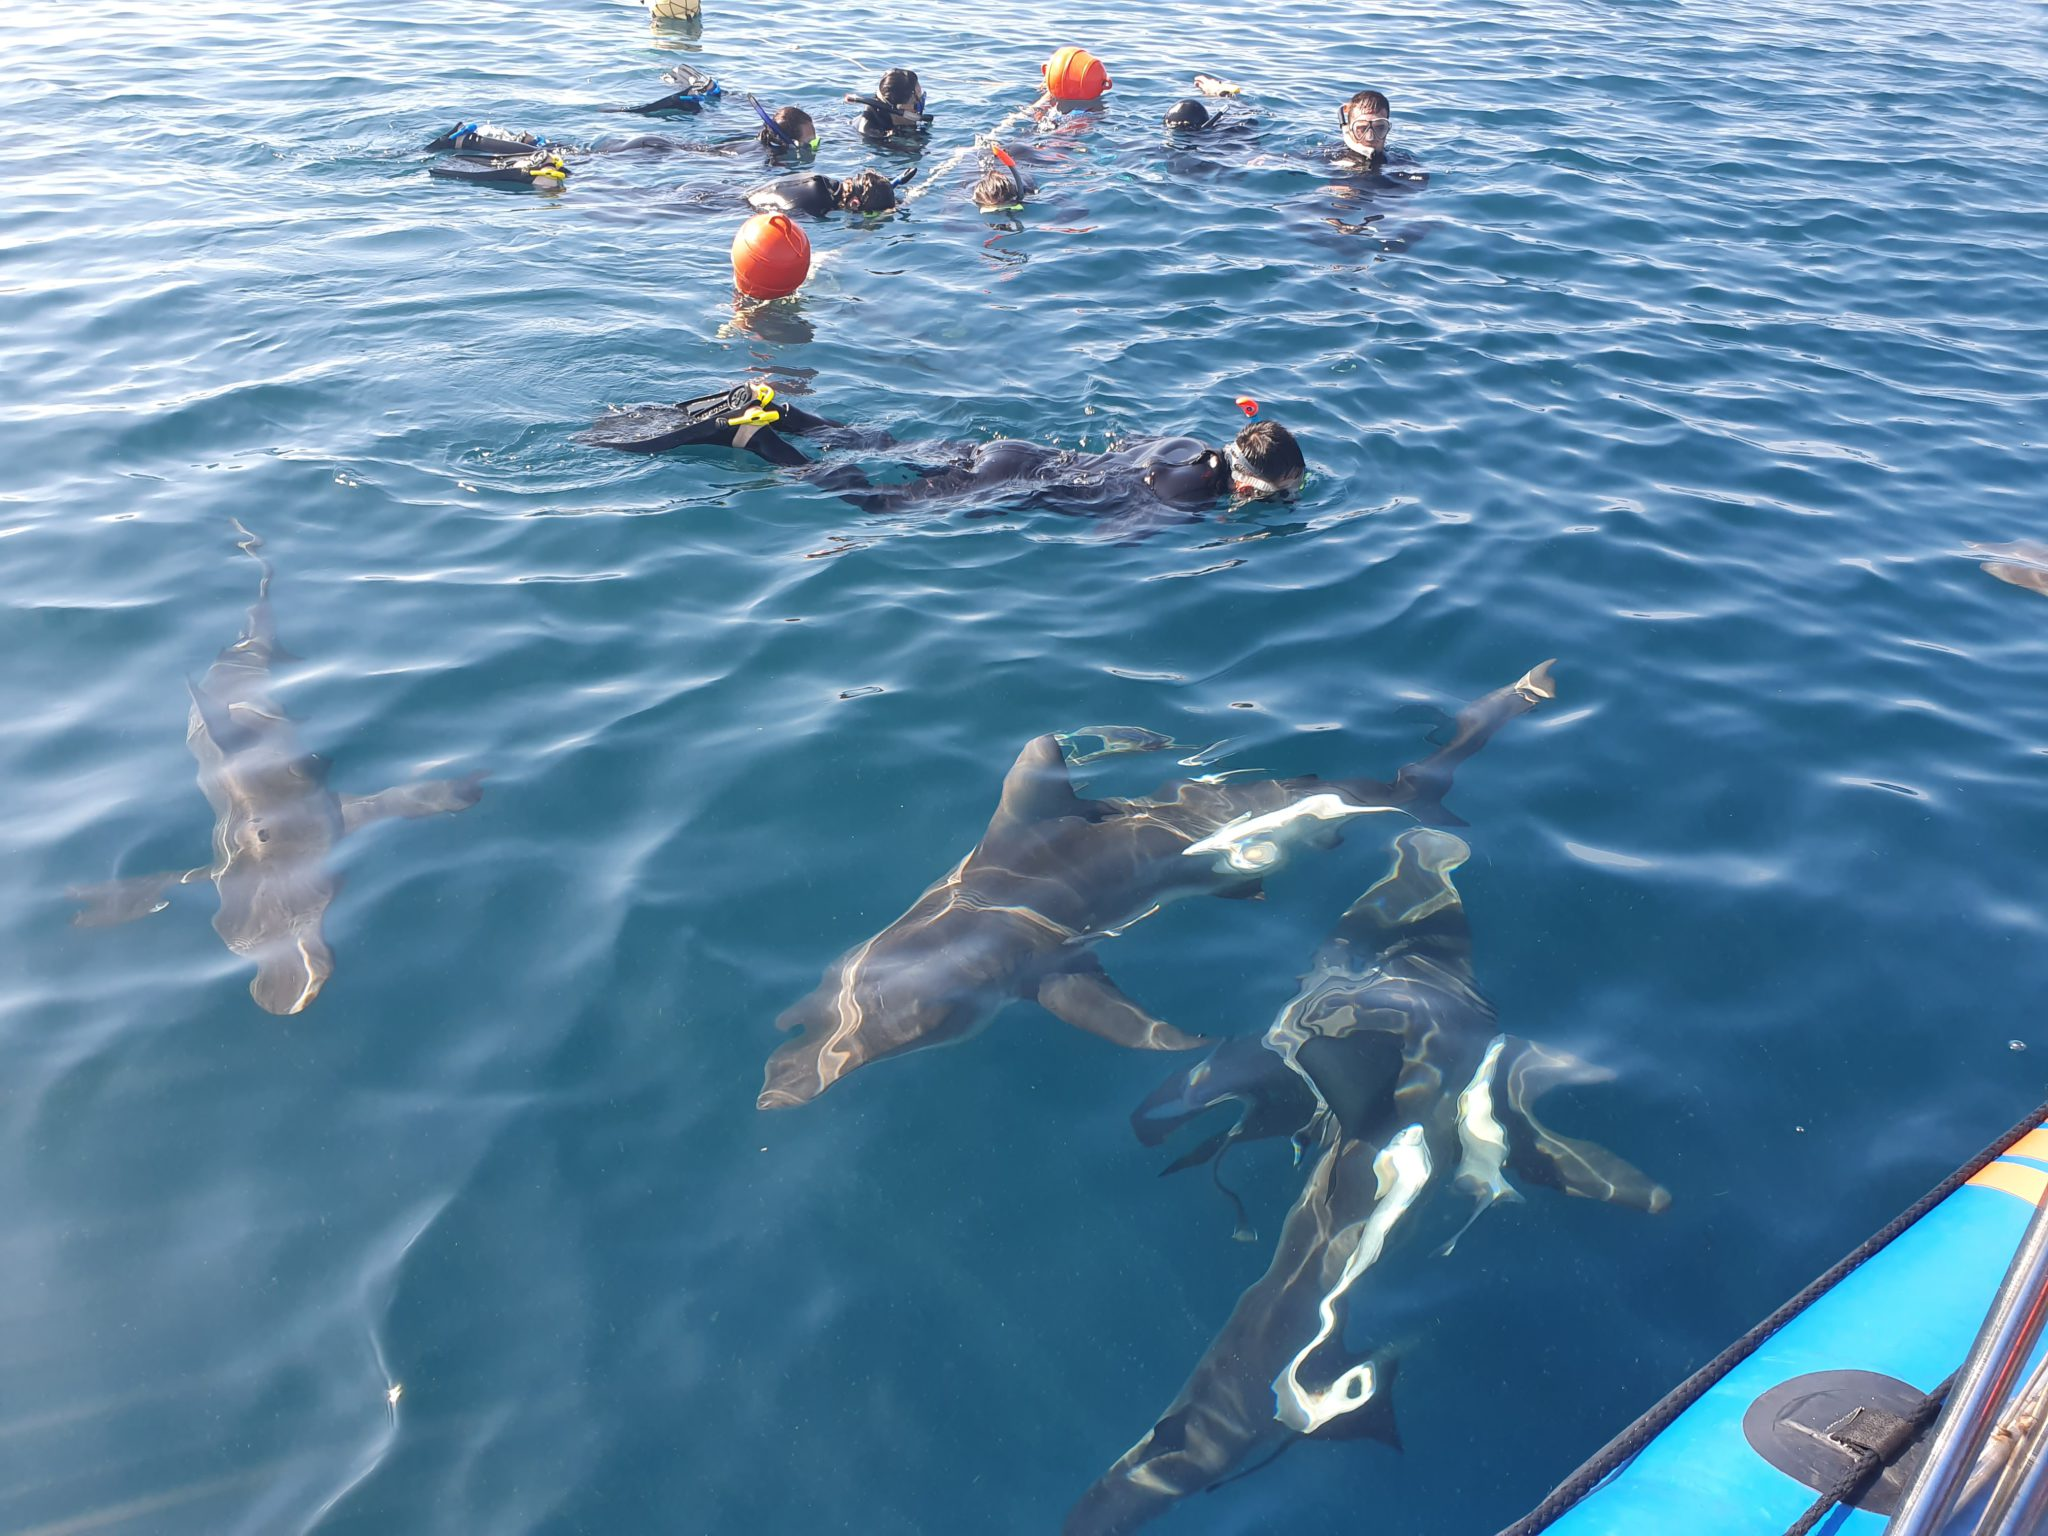 South Africa shark diving experience in Umkomaas: Cage or snorkel